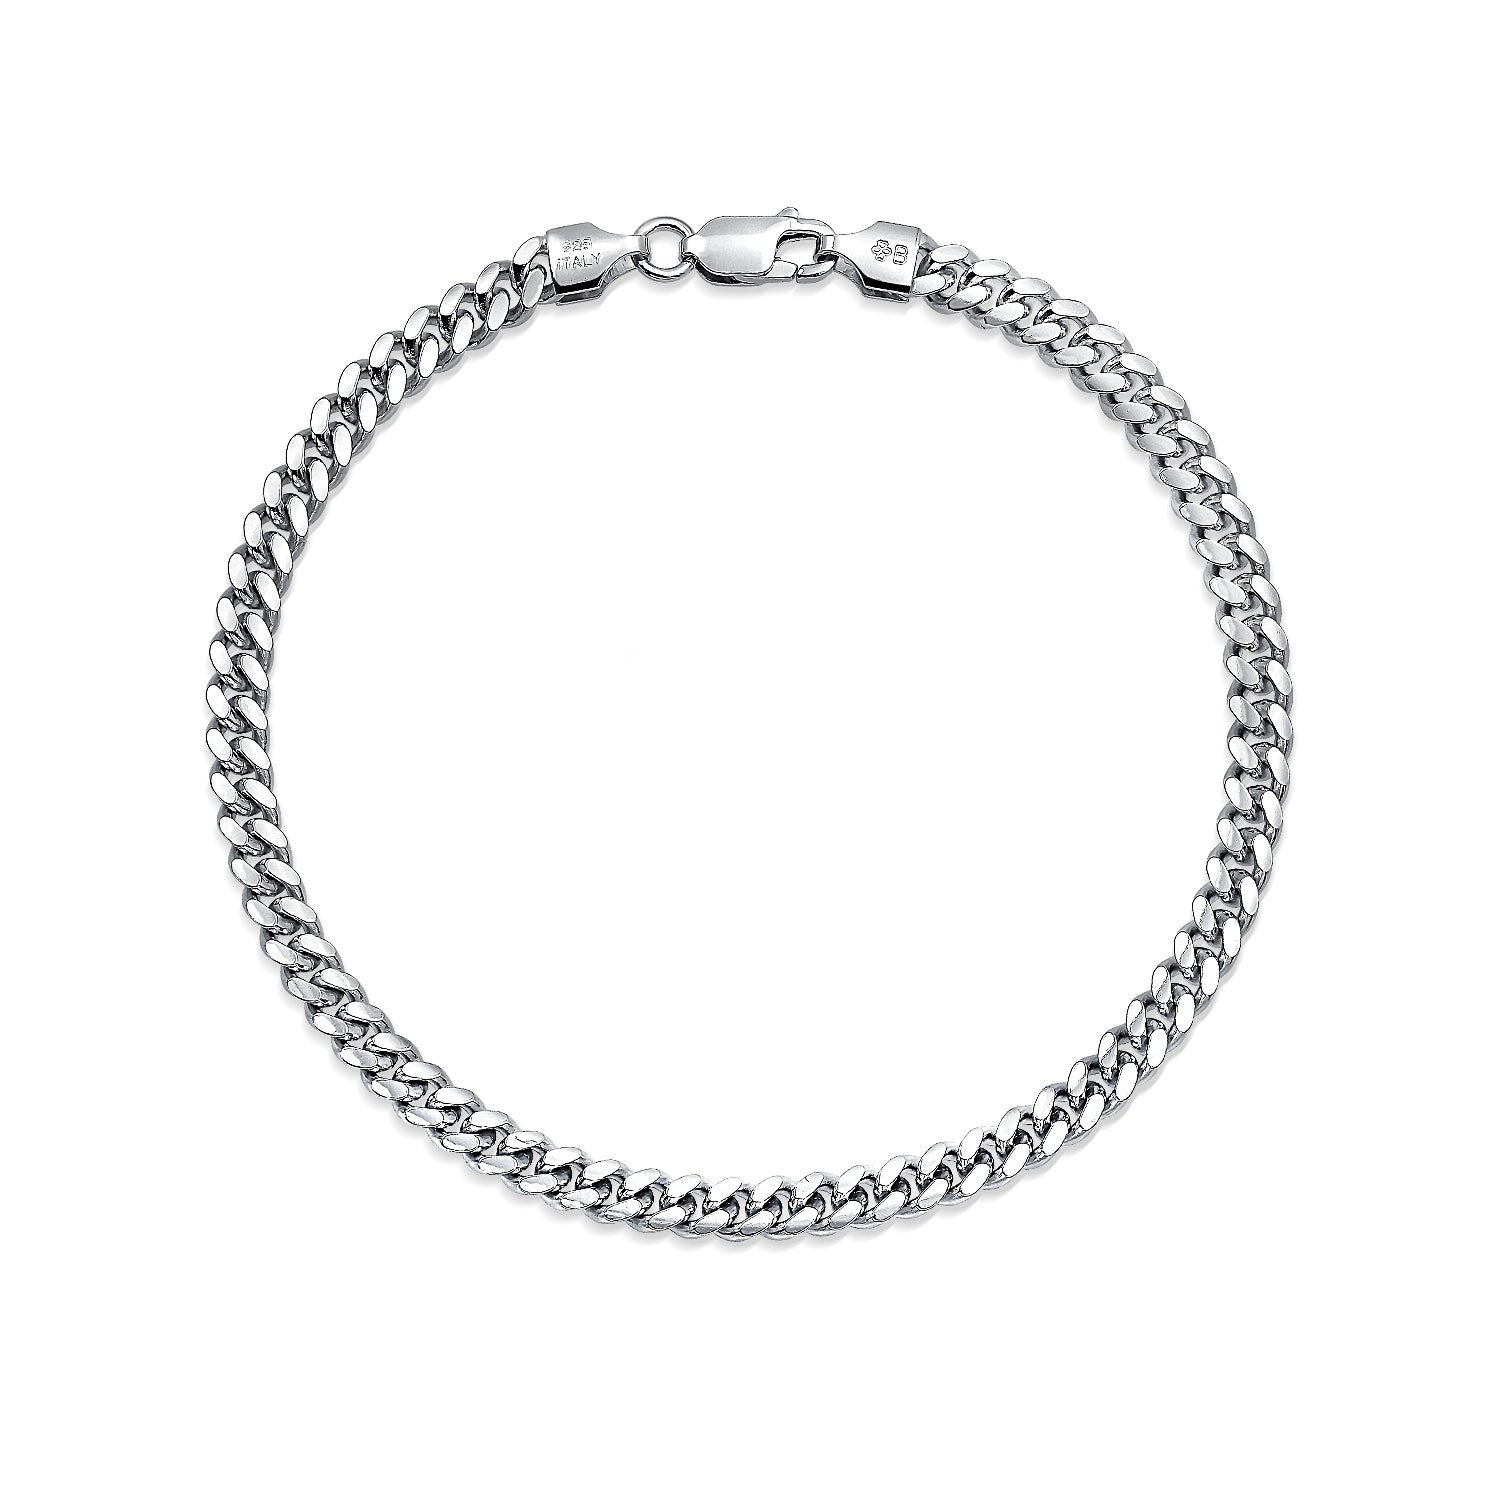 Sterling Silver Men S Bracelets Online At Our Best Jewelry Deals